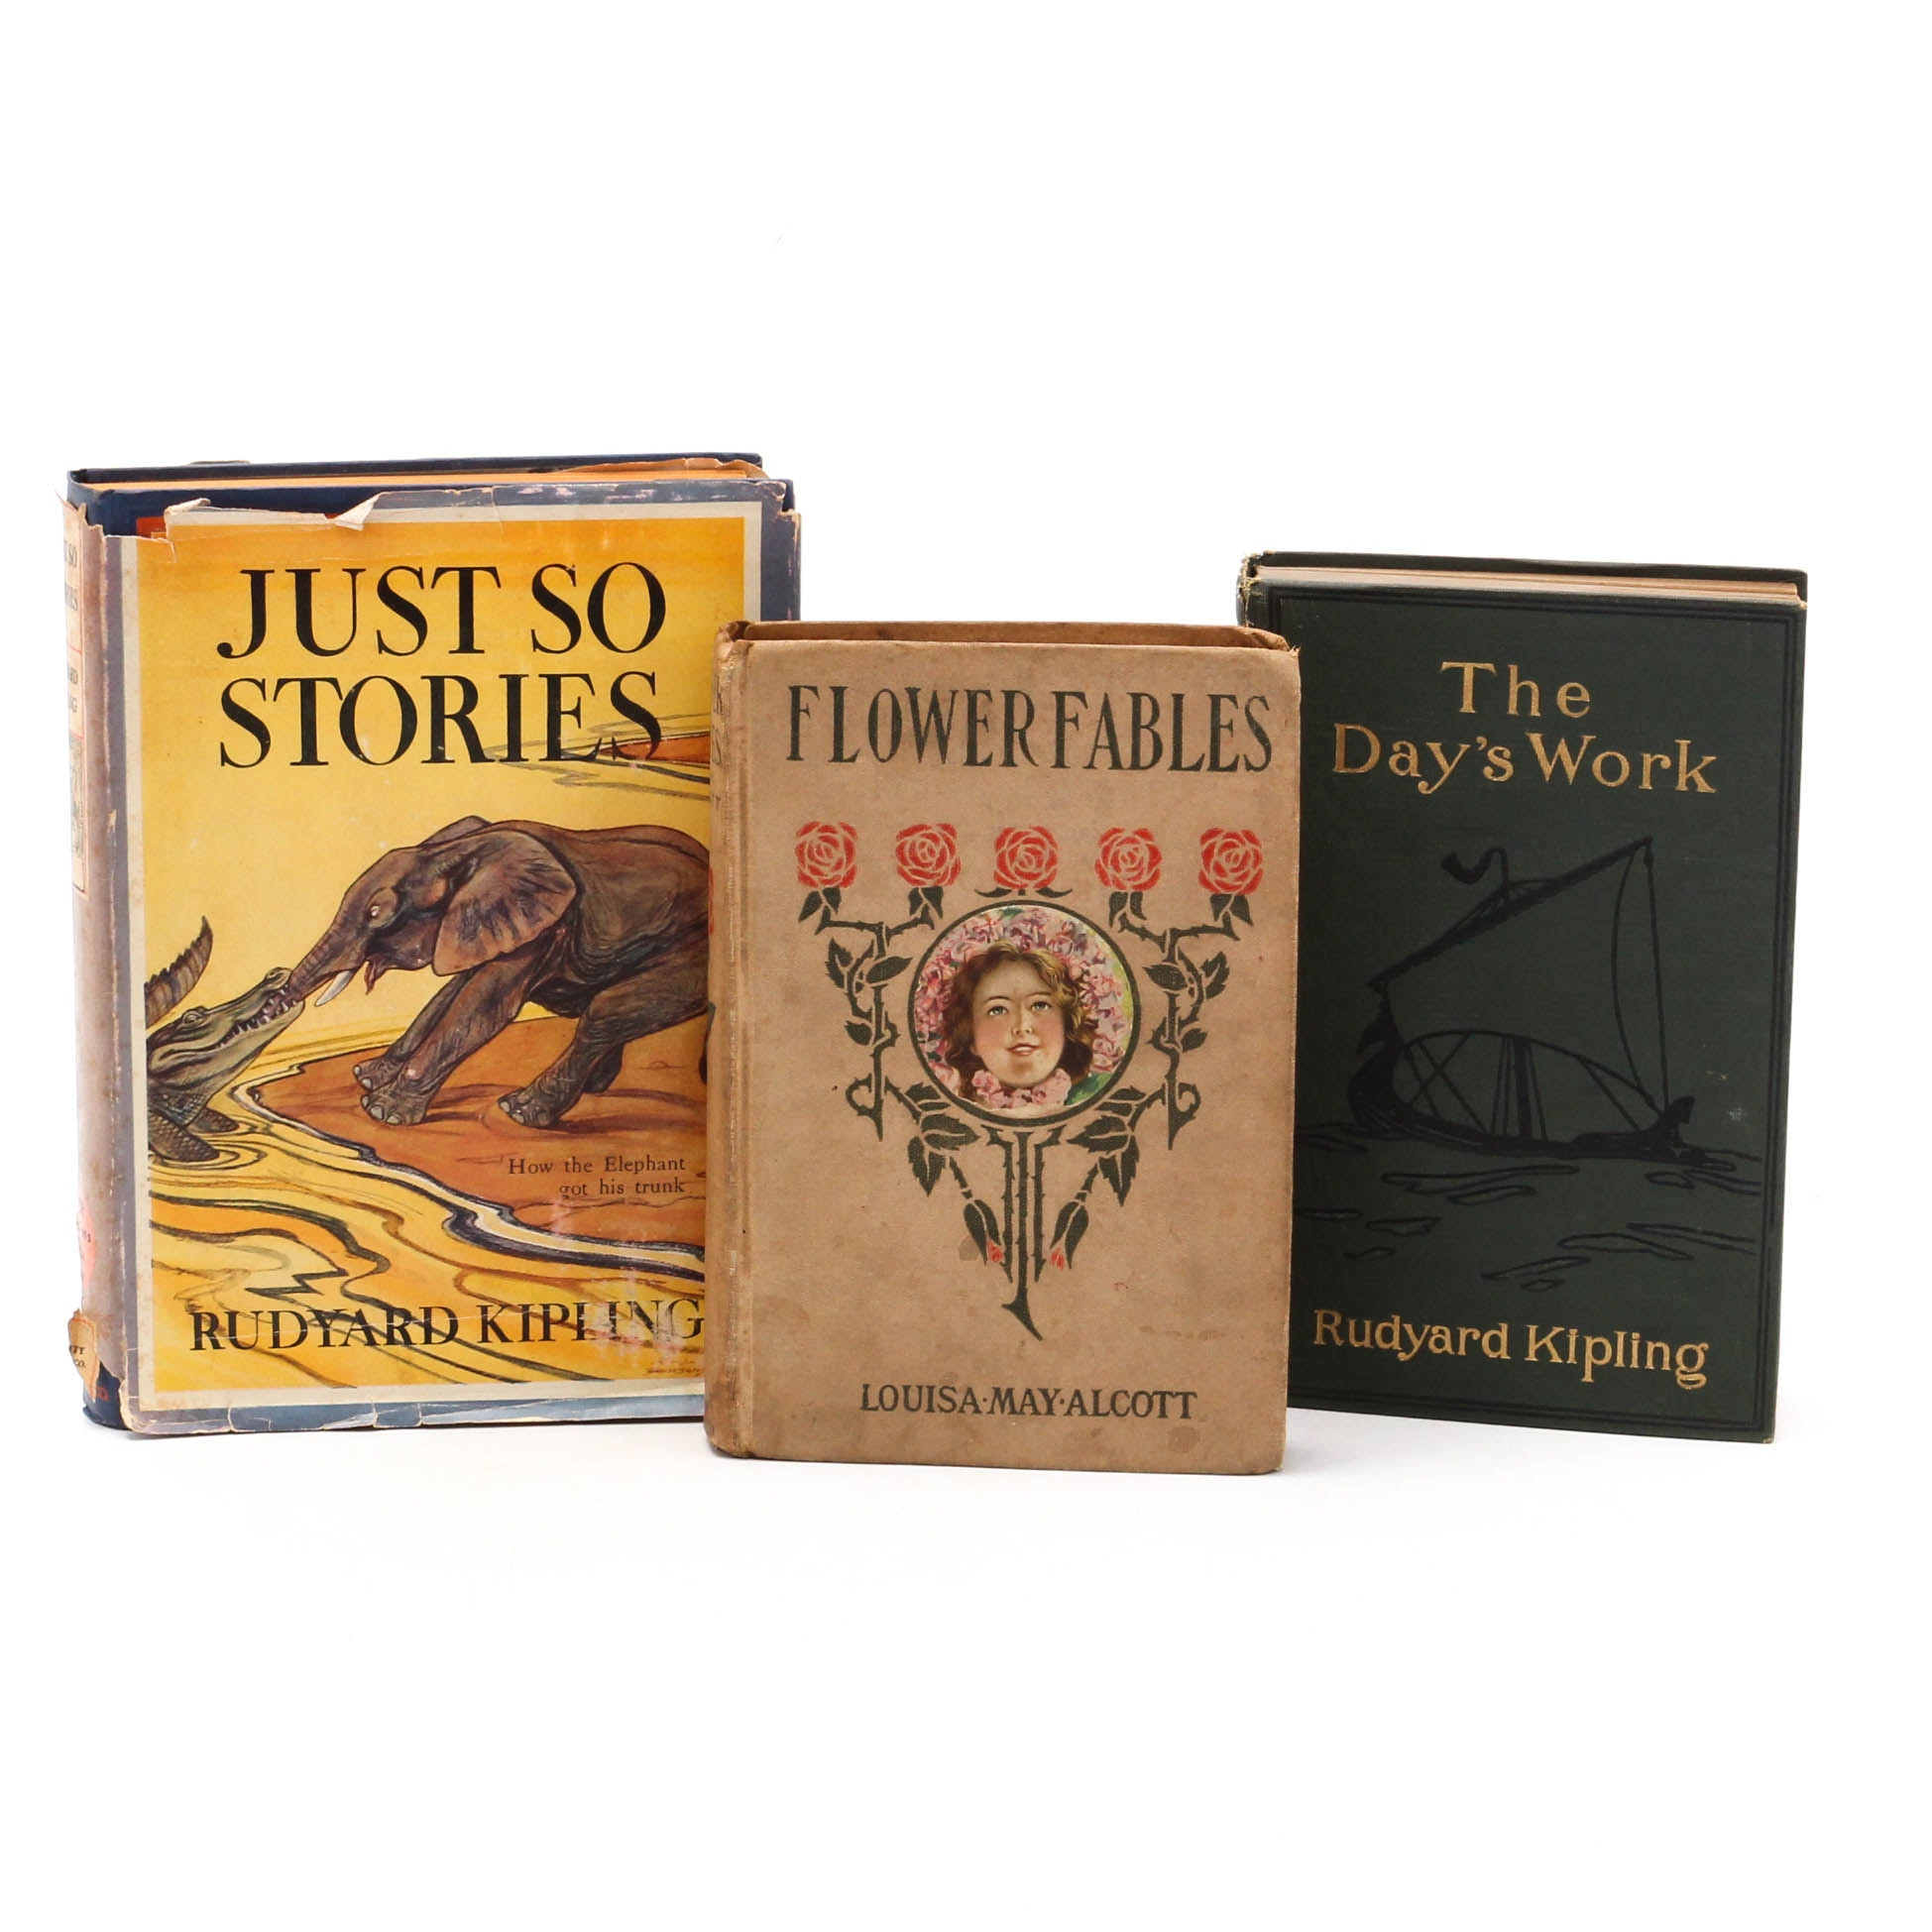 """Just So Stories"" by Rudyard Kipling and Other Vintage Books"